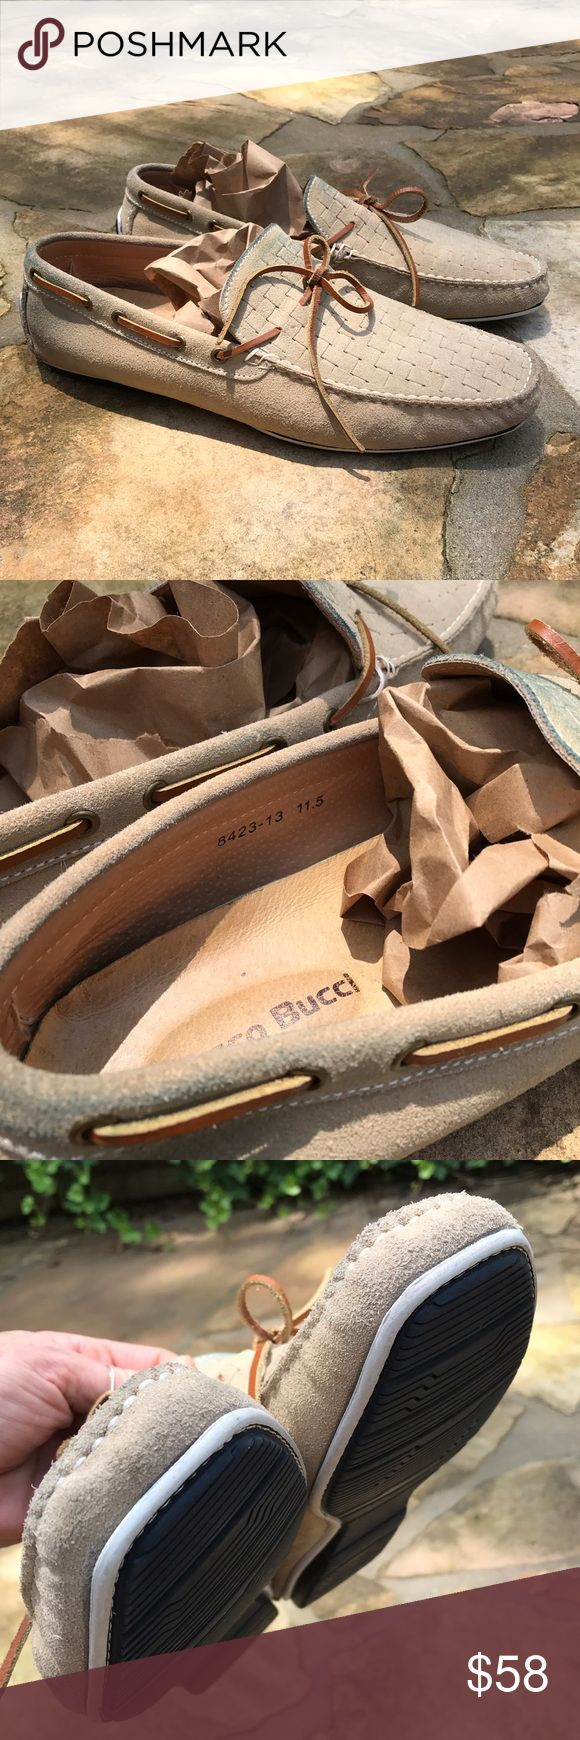 """Men's BACCO BUCCI """"Kincade"""" Driving Moc BACCO BUCCI """"Kincade"""" Driving Moc in Sand. These have been worn one(1) time. Structurally in perfect  condition. Leather does have a little """"blue"""" from the denim jeans that were worn with them. Nothing that can't be cleaned.  These are exceptionally well made... and a clear deal! Size 11.5 mens medium. Bacco Bucci Shoes Loafers & Slip-Ons"""